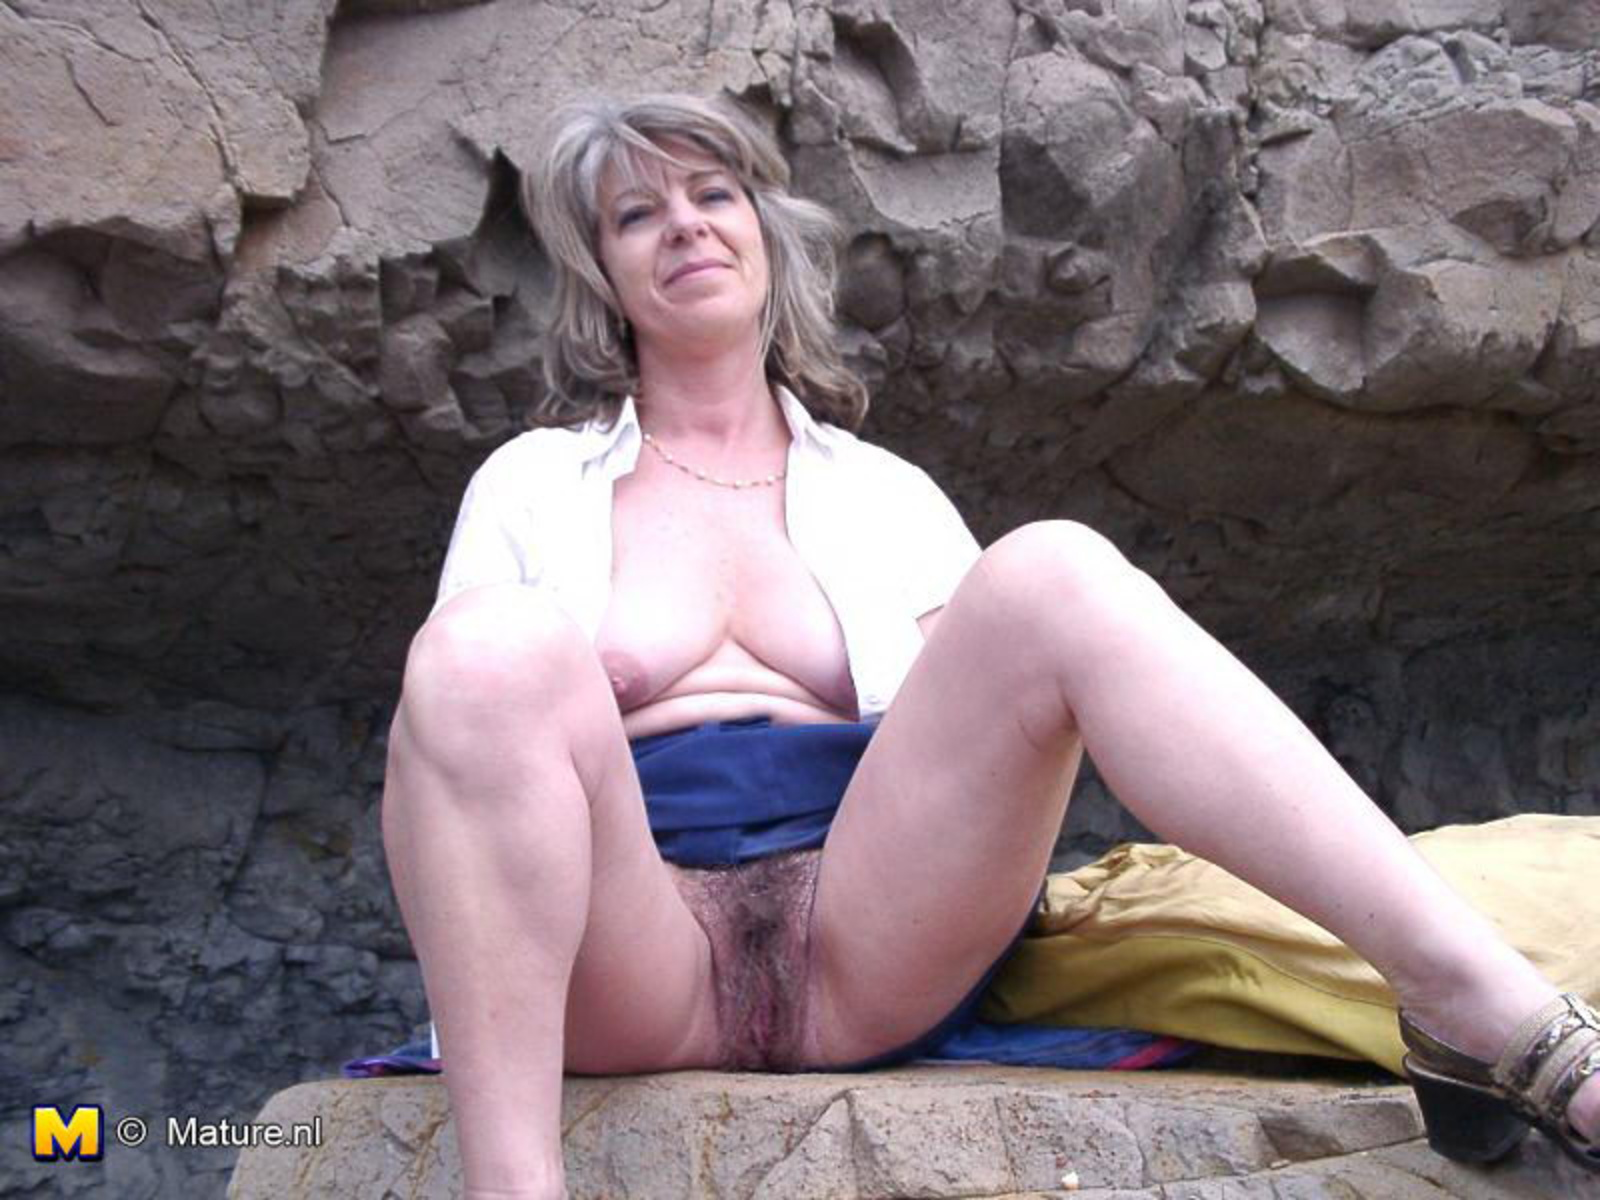 Amature Sex Pix 21